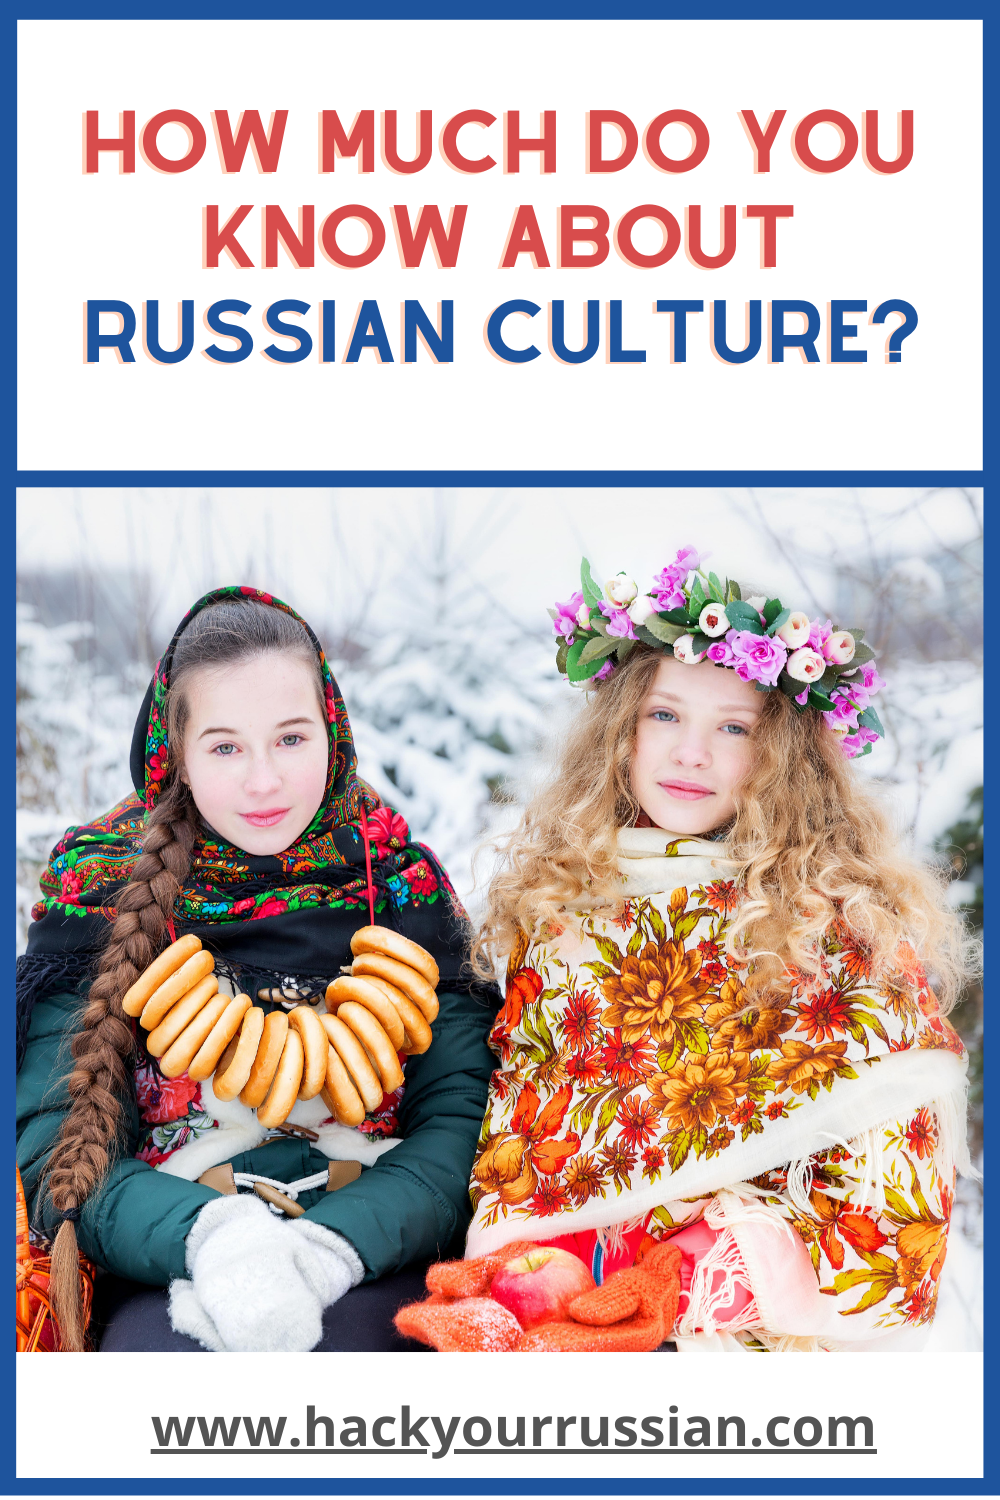 Russian culture and traditions quiz - How well do you know Russia